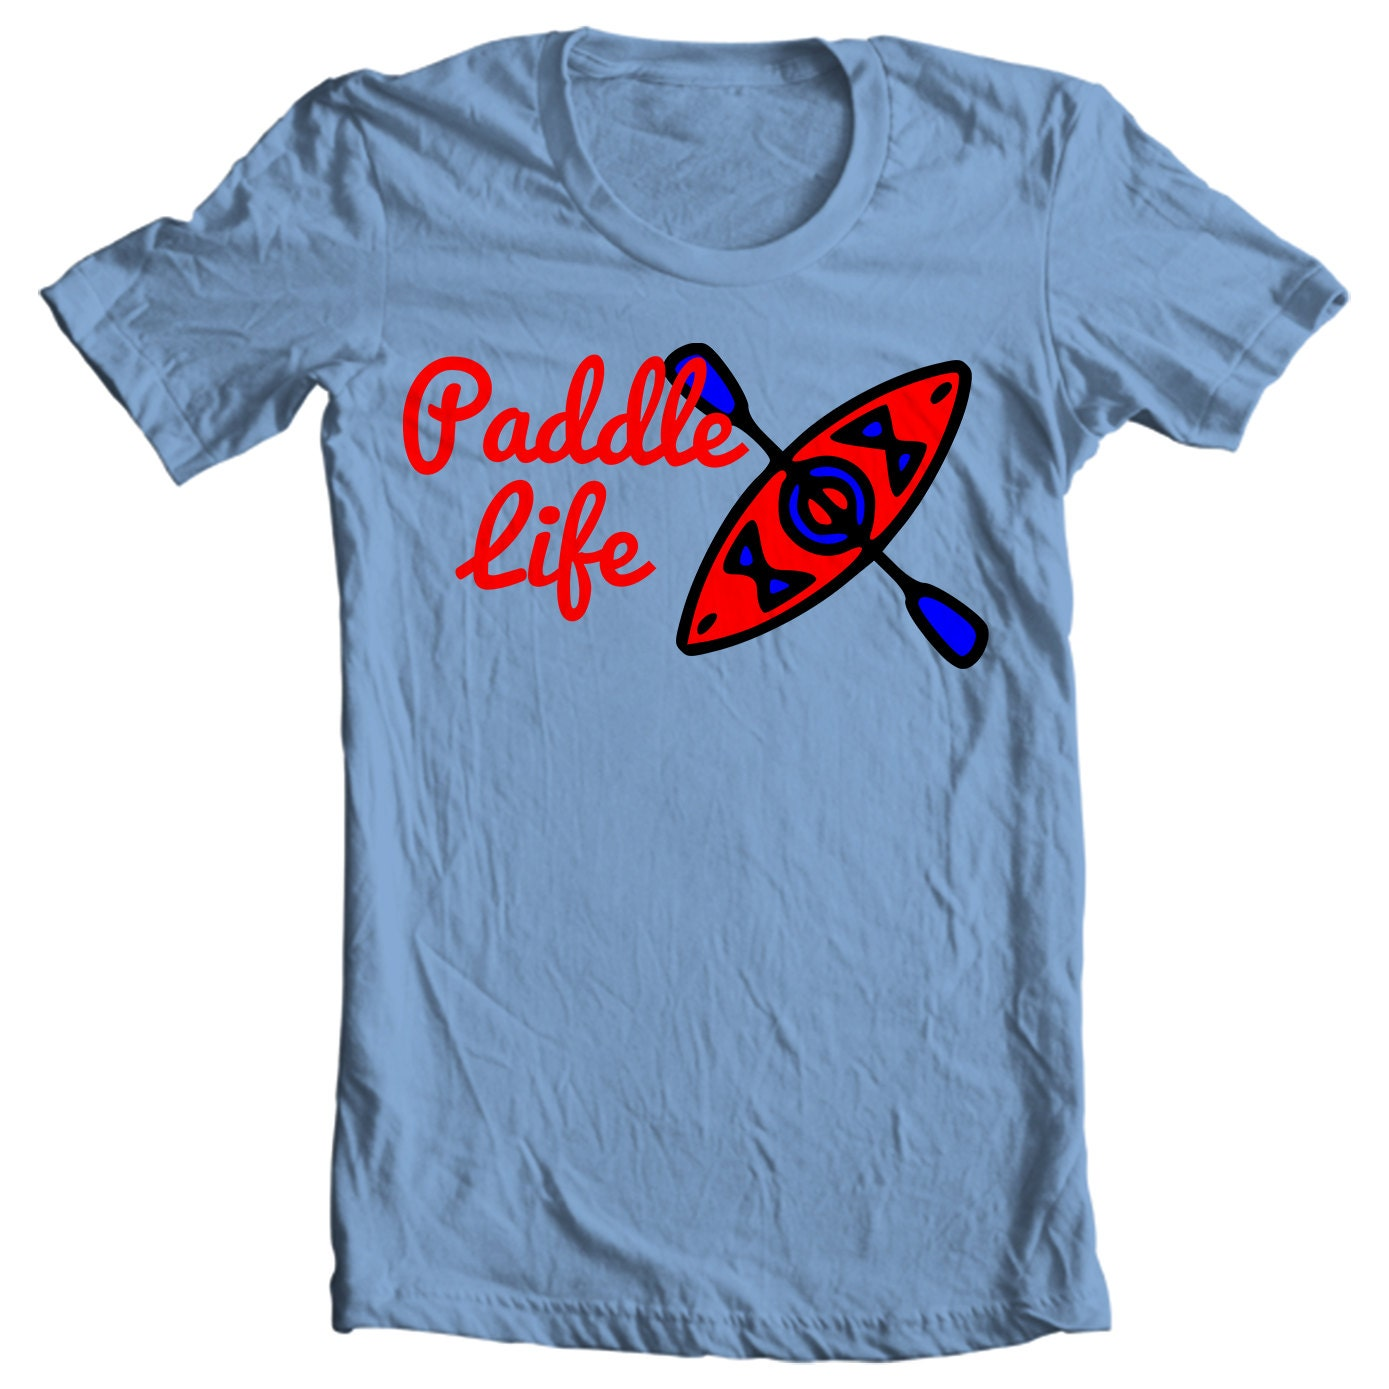 Kayak T-shirt - Paddle Life Kayaking T-shirt